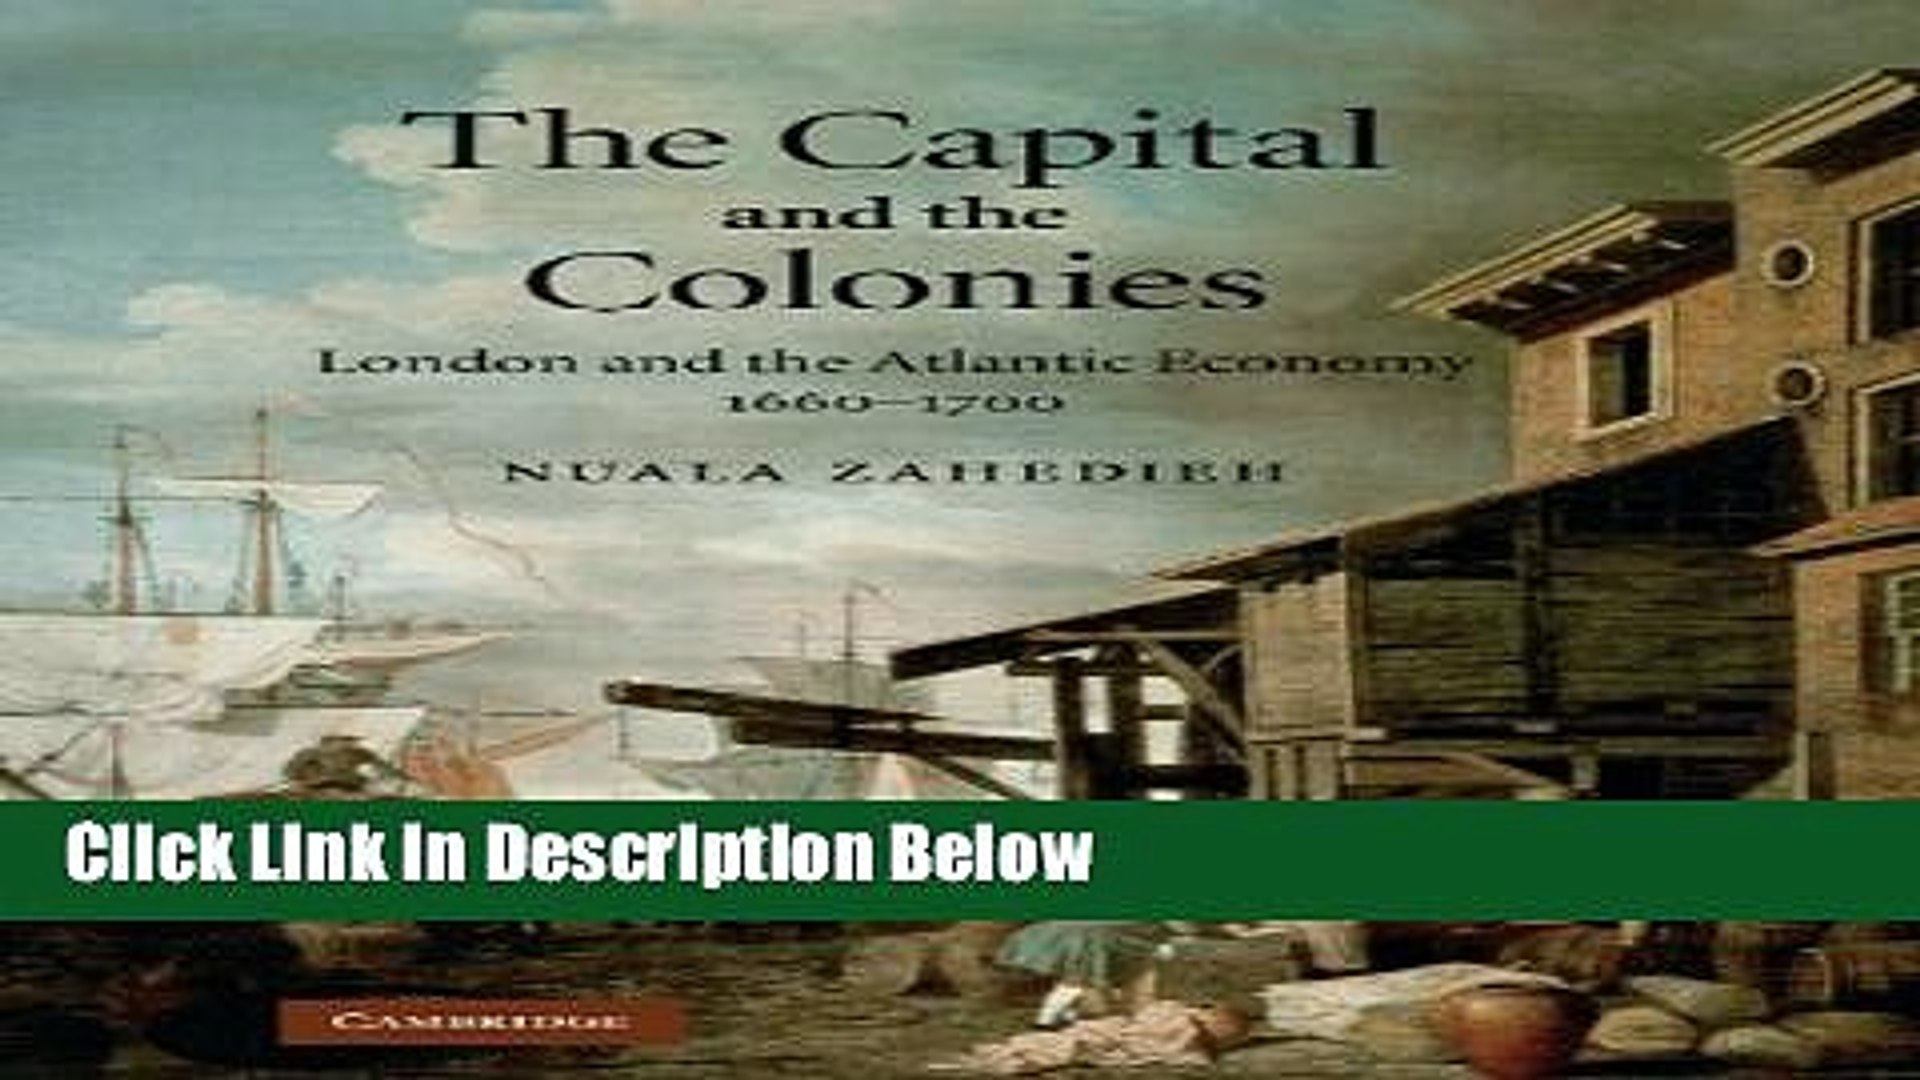 The Capital and the Colonies London and the Atlantic Economy 1660-1700